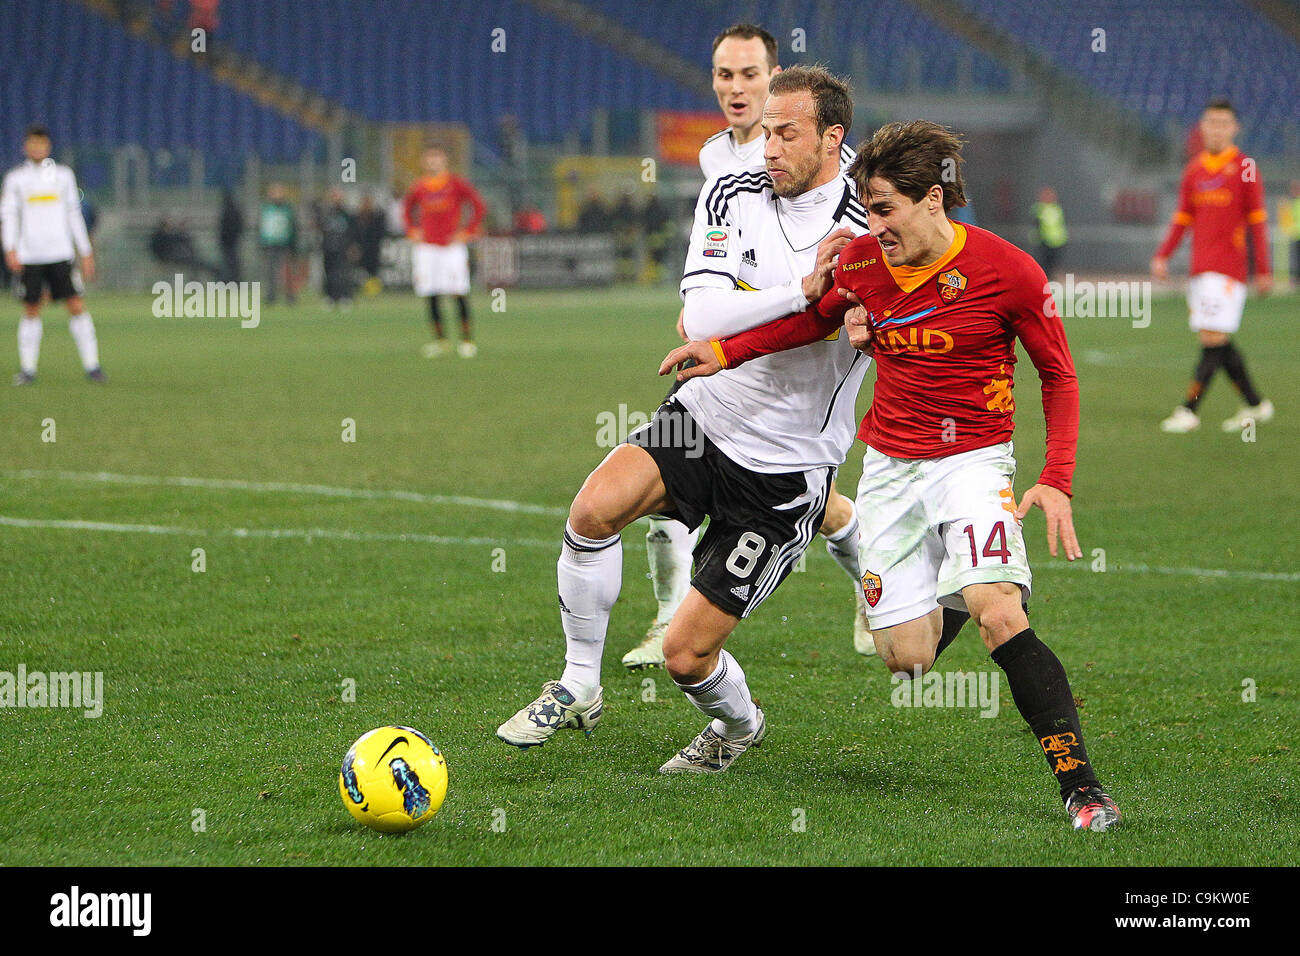 01.10.2011, Rome, Italy.   Bojan in action during the Serie A match between AS Roma vs Cesena, played in the Stadio - Stock Image